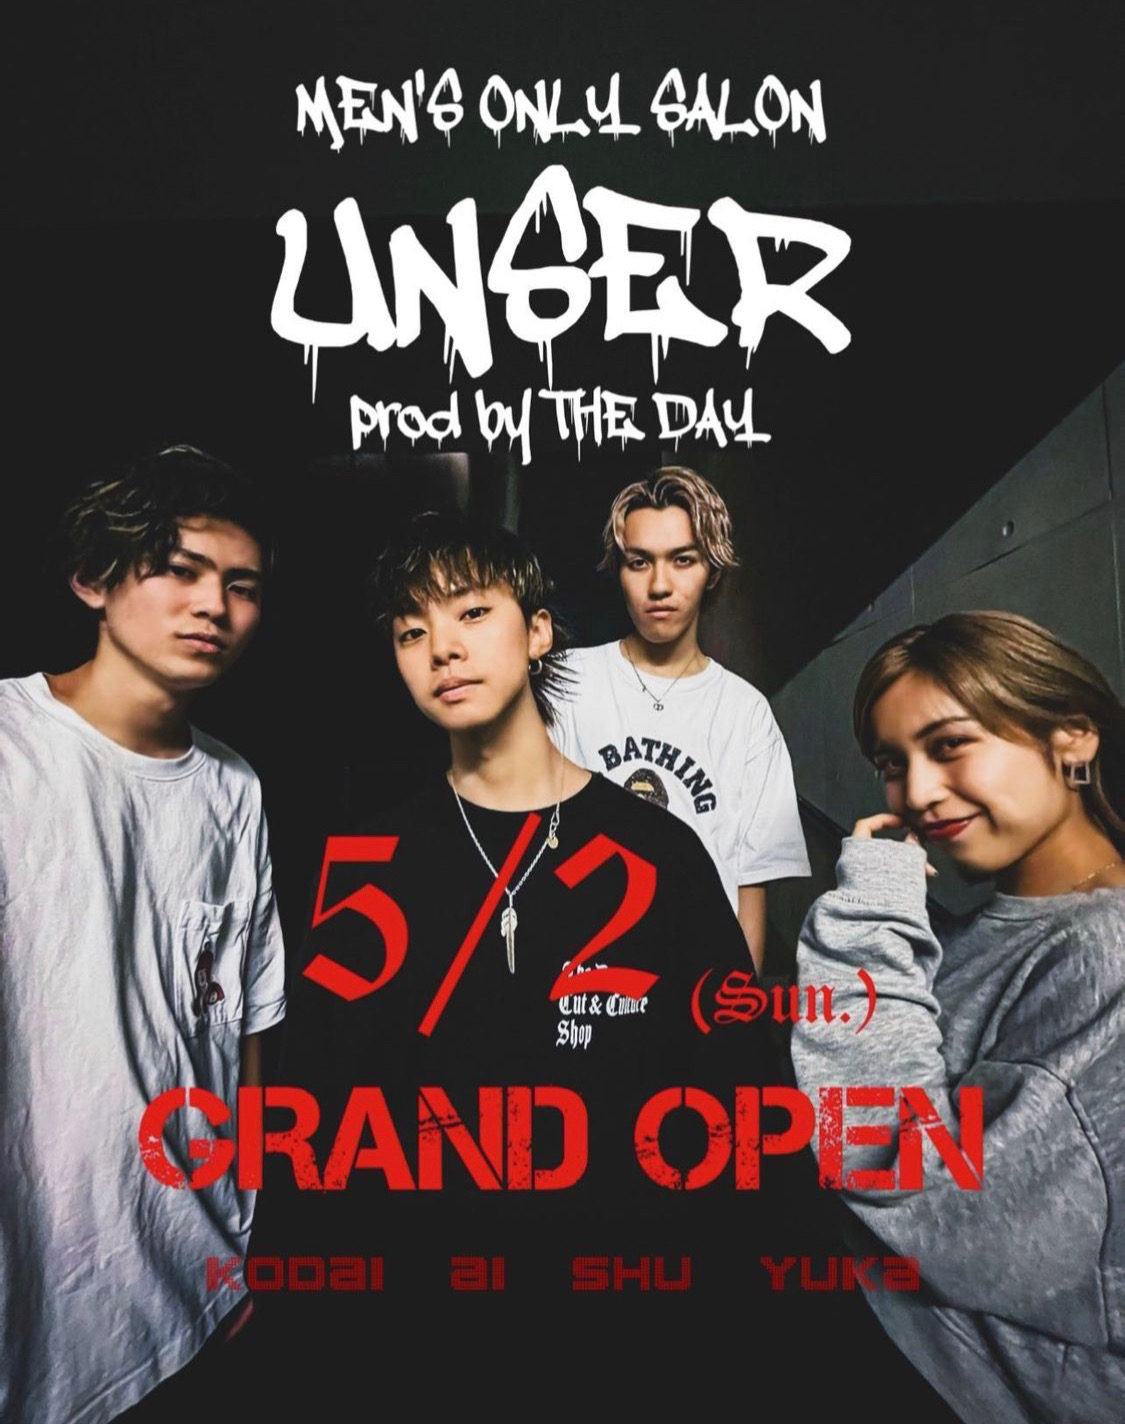 UNSER prod by THE DAY